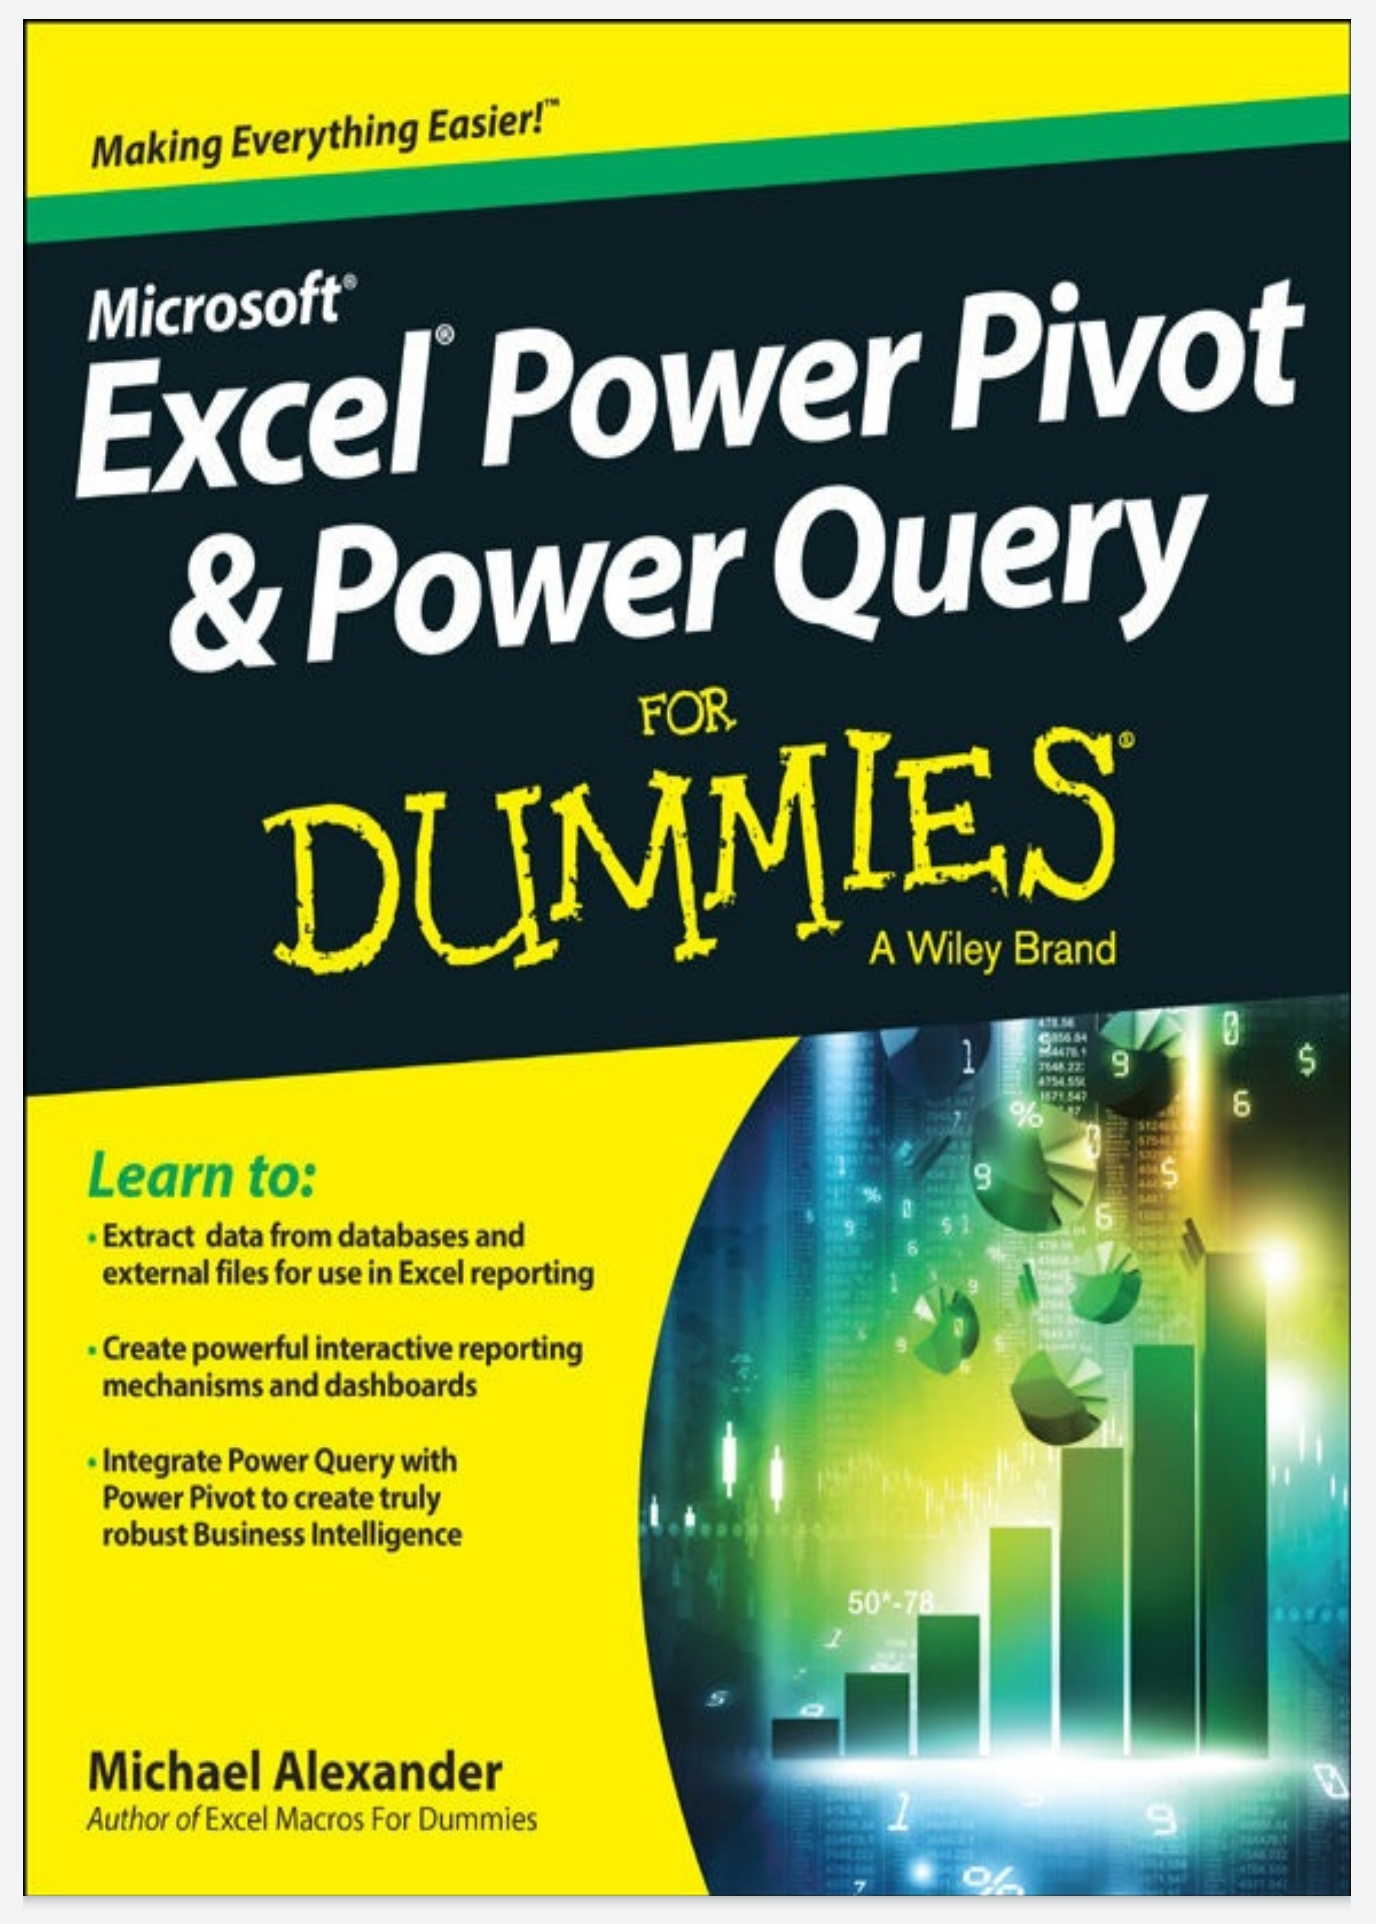 Excel Power Pivot and Power Query for Dummies – Wiley FREE EBOOK PDF